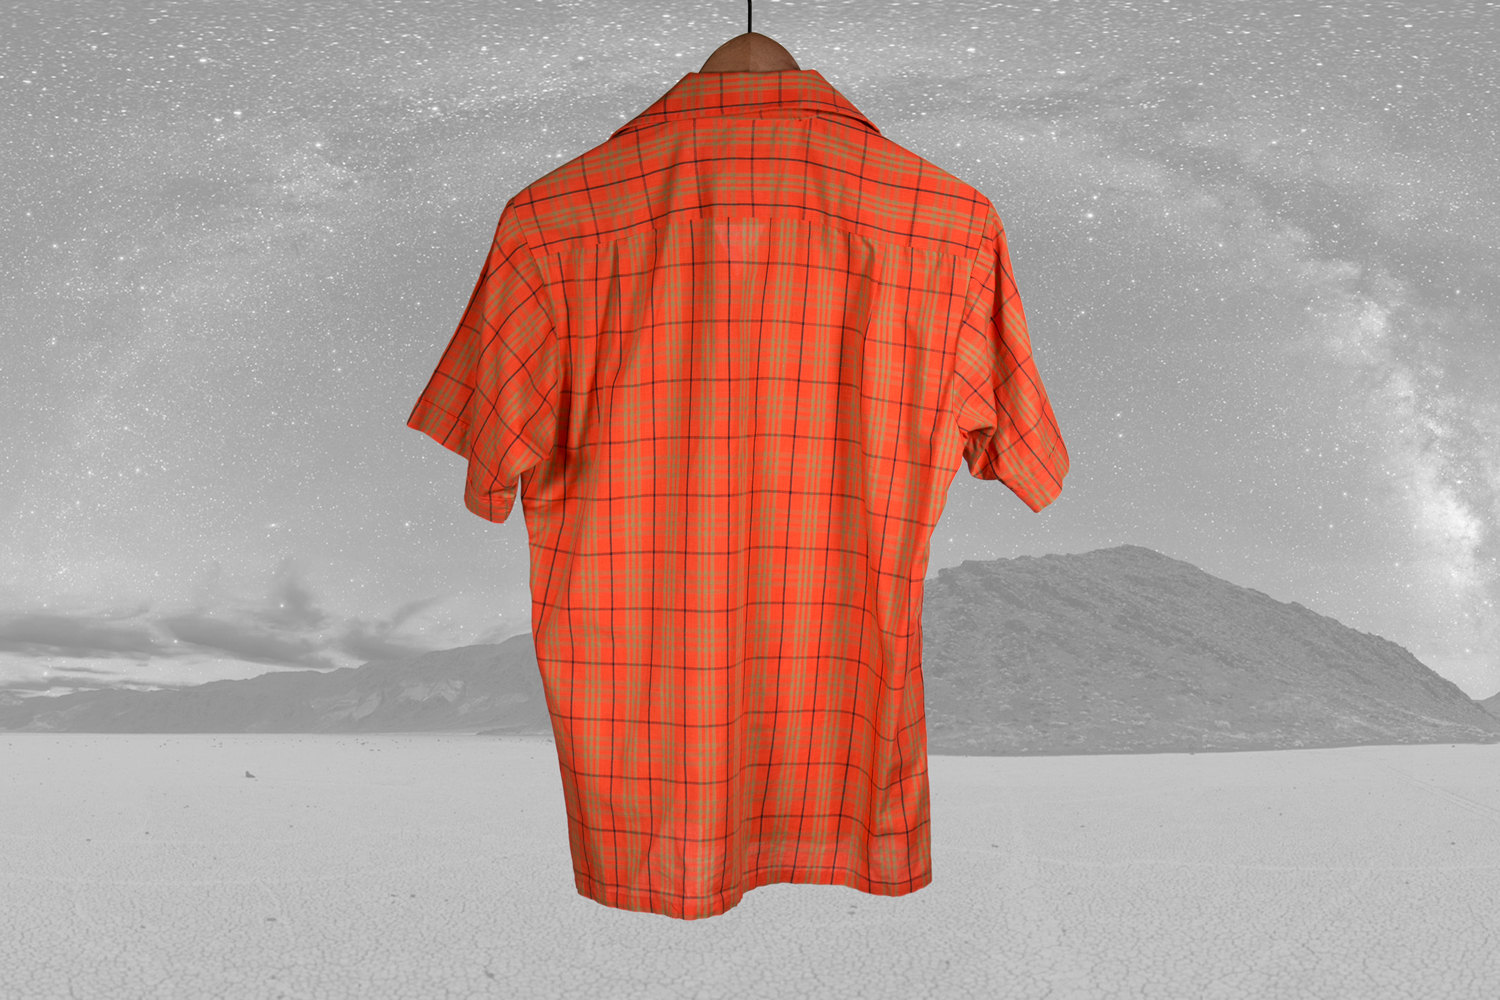 Vintage 1960's Red and Gold Checkered Short Sleeve Shirt by Topps in Size Men's Small - Great Lines and Collar - Retro, Indie, Hipster